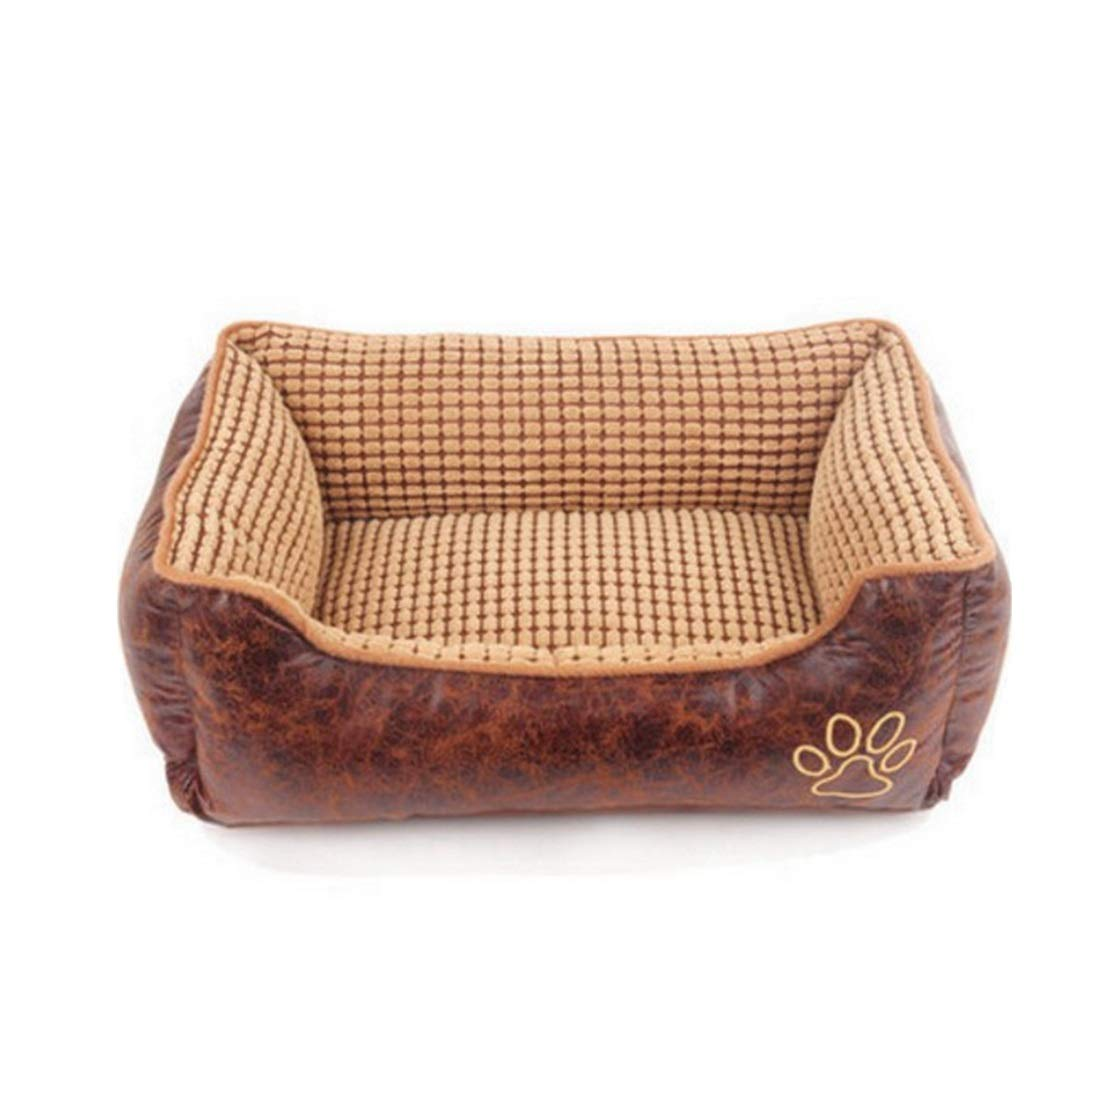 Brown S Brown S RABILTY Kennel Dog Pad Four Seasons Universal Removable Large Medium and Large Pets golden Retriever Teddy Pet Dog Bed (color   Brown, Size   S)